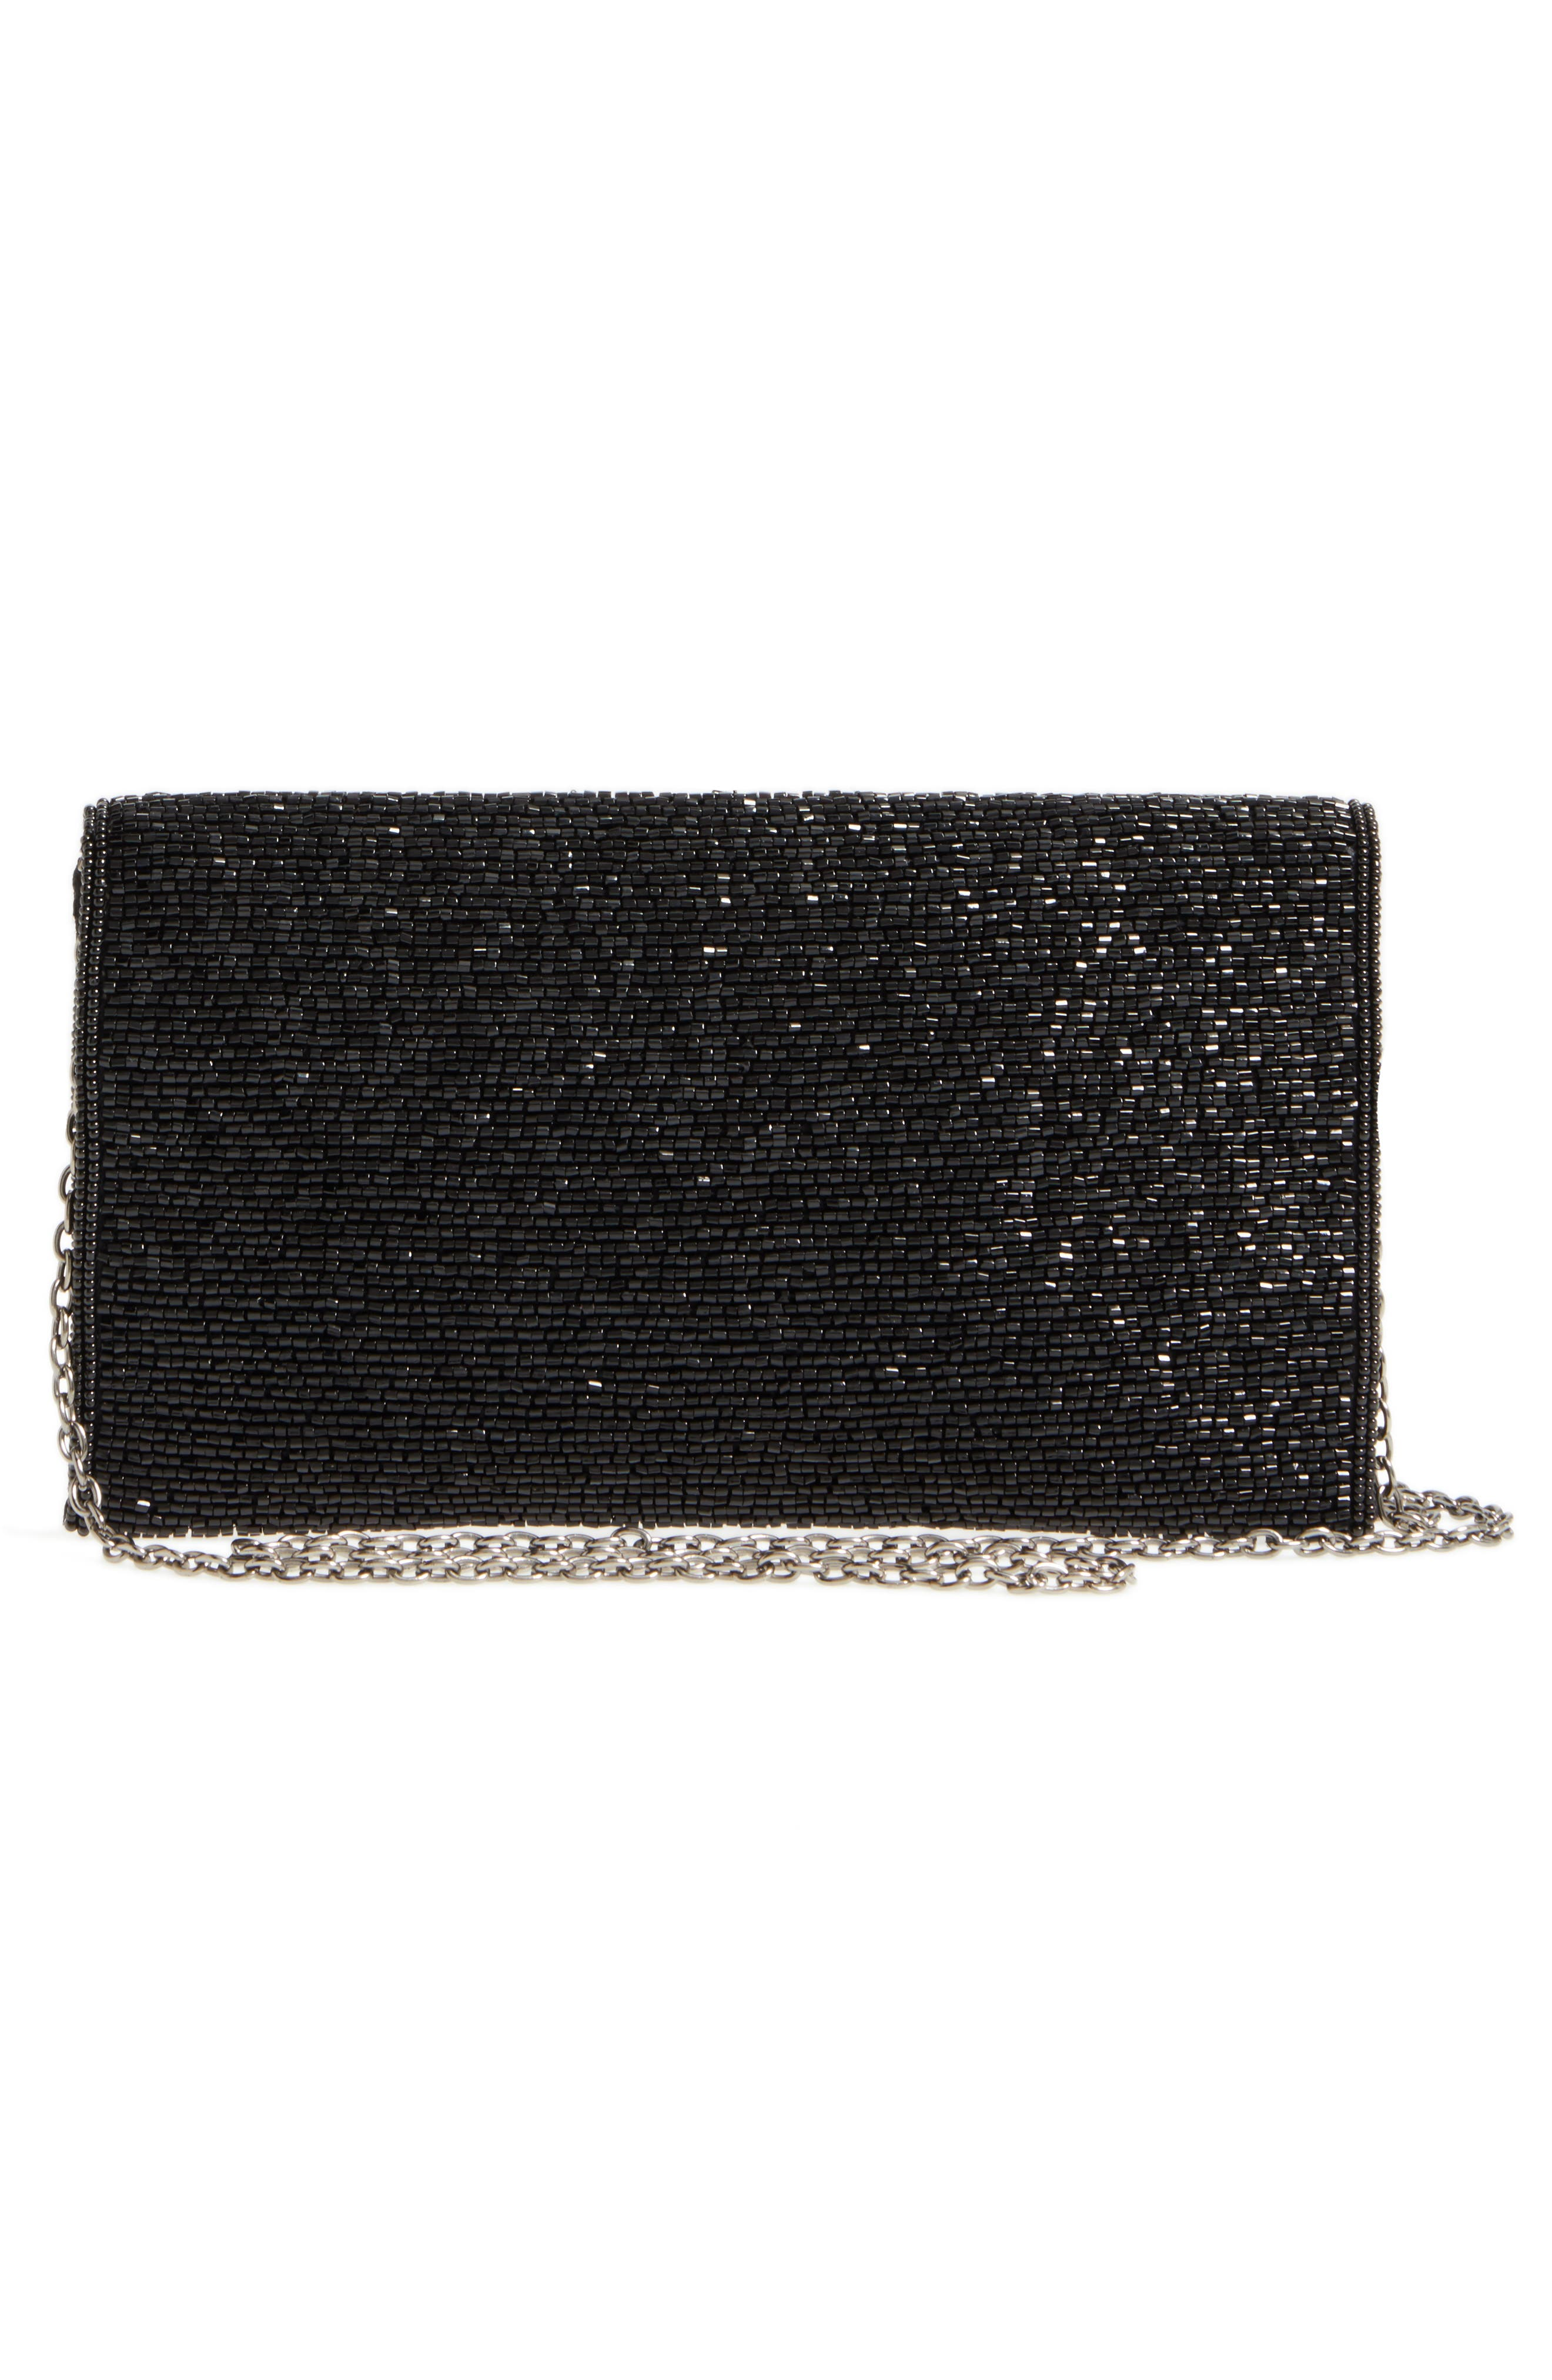 Alhambra Beaded Envelope Clutch,                             Alternate thumbnail 3, color,                             BLACK